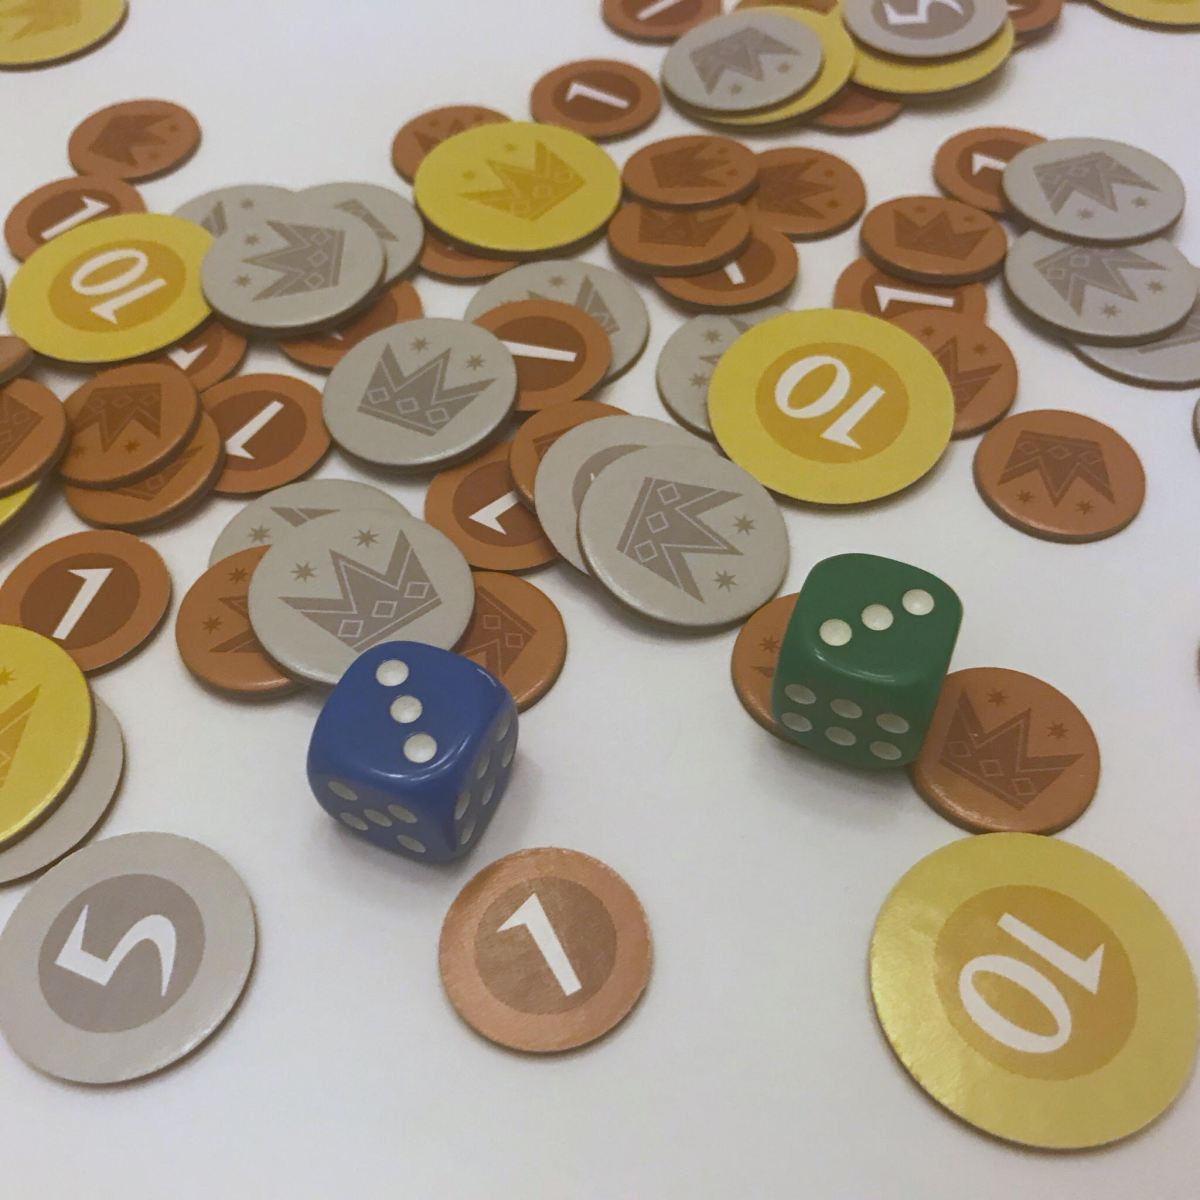 Machi Koro Dice and Coins